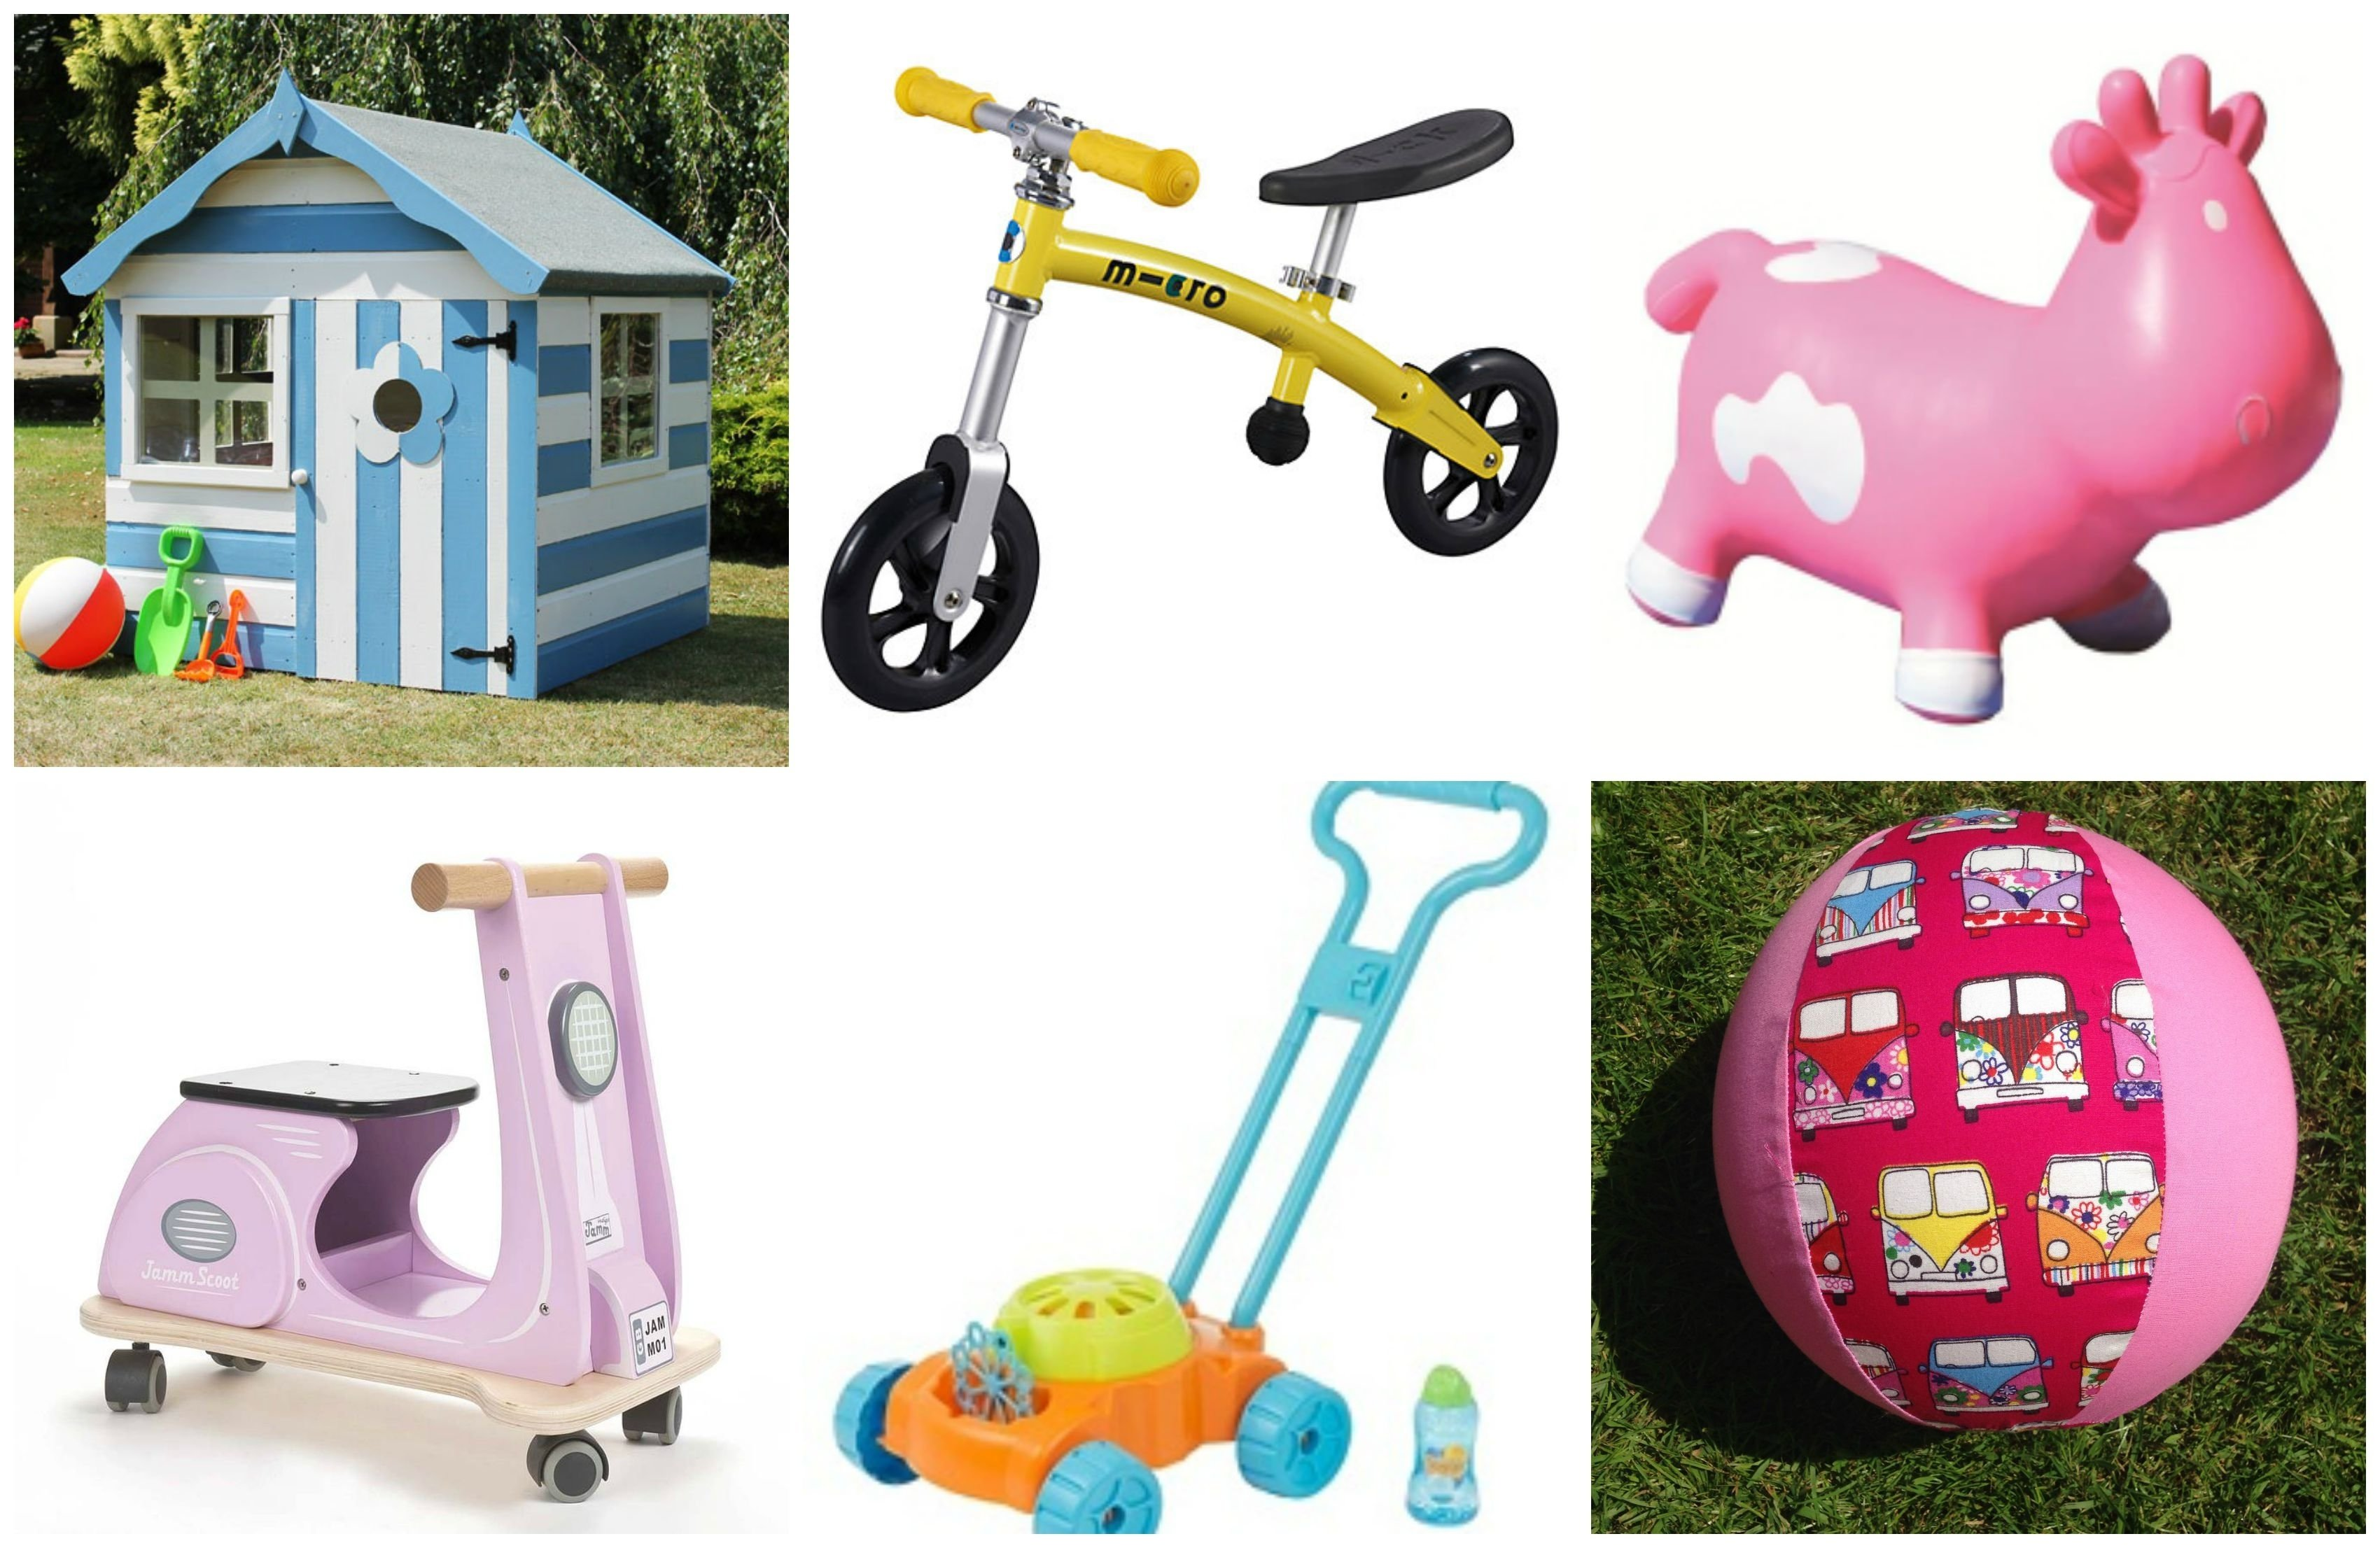 10 Most Recommended Gift Ideas 2 Year Old Girl 2 year old birthday gift guide newyoungmum 2 2020